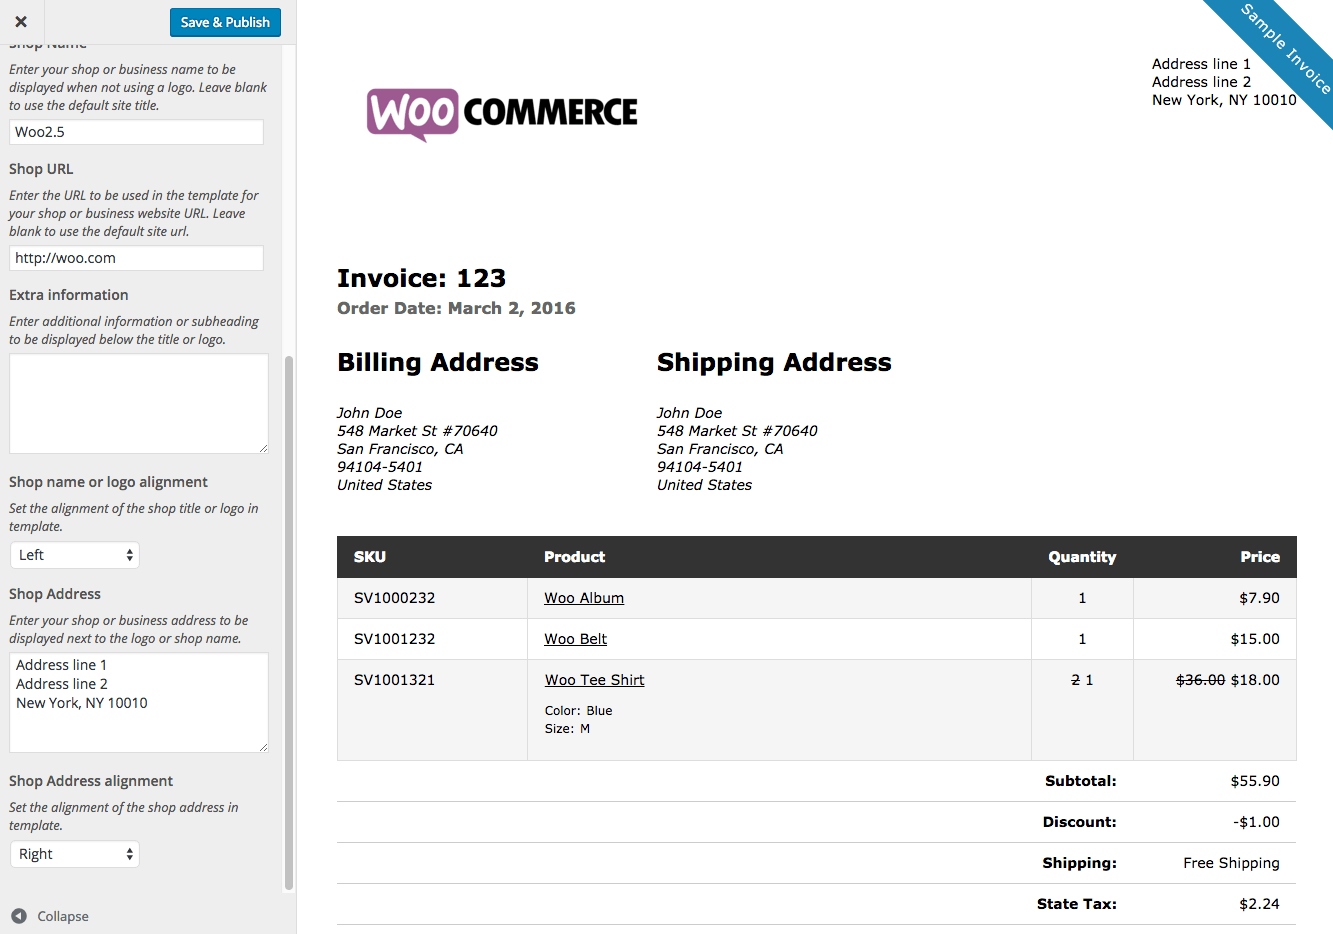 Ediblewildsus  Stunning Woocommerce Print Invoices Amp Packing Lists  Woocommerce Docs With Great Woocommerce Print Invoices  Packing Lists Customizer With Divine How To Make An Invoice Uk Also Free Download Invoice Software In Addition Format For Proforma Invoice And Example Of Proforma Invoice As Well As Quotation Invoice Additionally How To Determine Invoice Price On A New Car From Docswoocommercecom With Ediblewildsus  Great Woocommerce Print Invoices Amp Packing Lists  Woocommerce Docs With Divine Woocommerce Print Invoices  Packing Lists Customizer And Stunning How To Make An Invoice Uk Also Free Download Invoice Software In Addition Format For Proforma Invoice From Docswoocommercecom